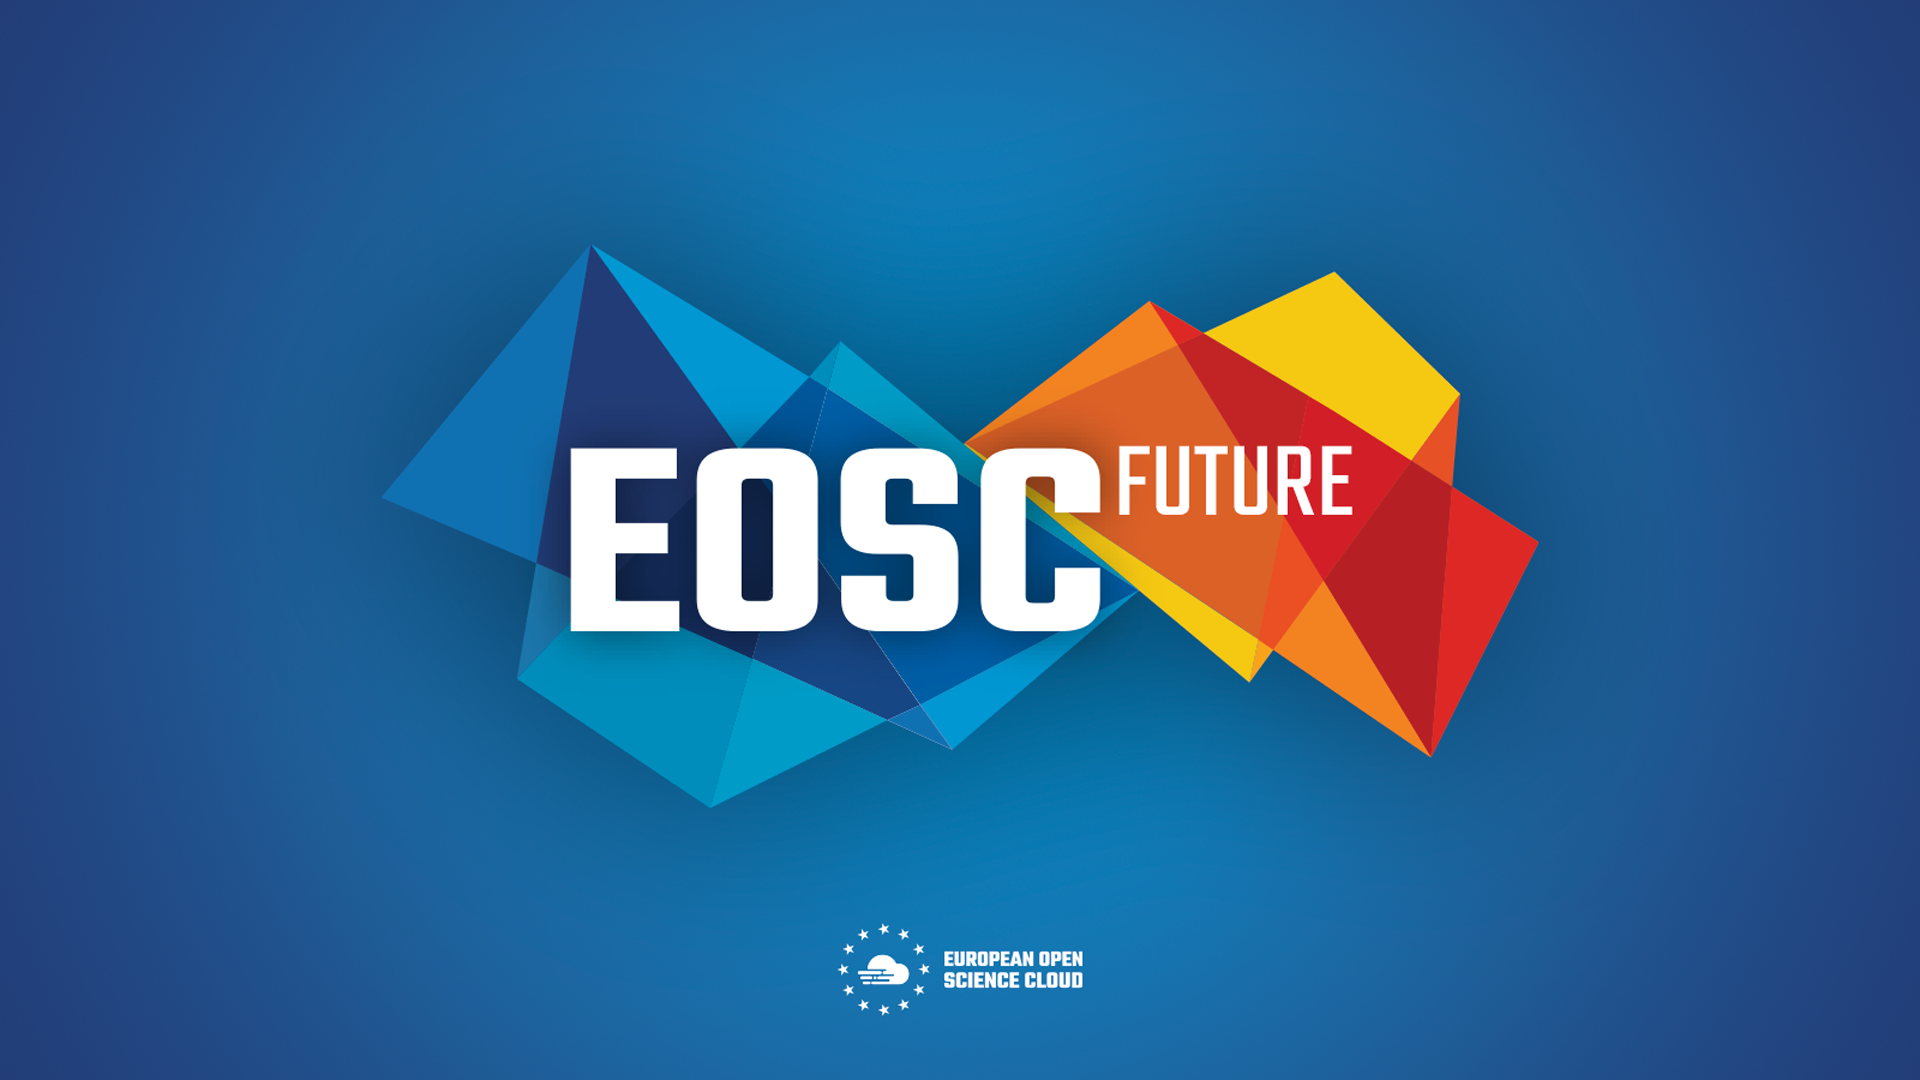 Promotion of open science in the EOSC FUTURE project